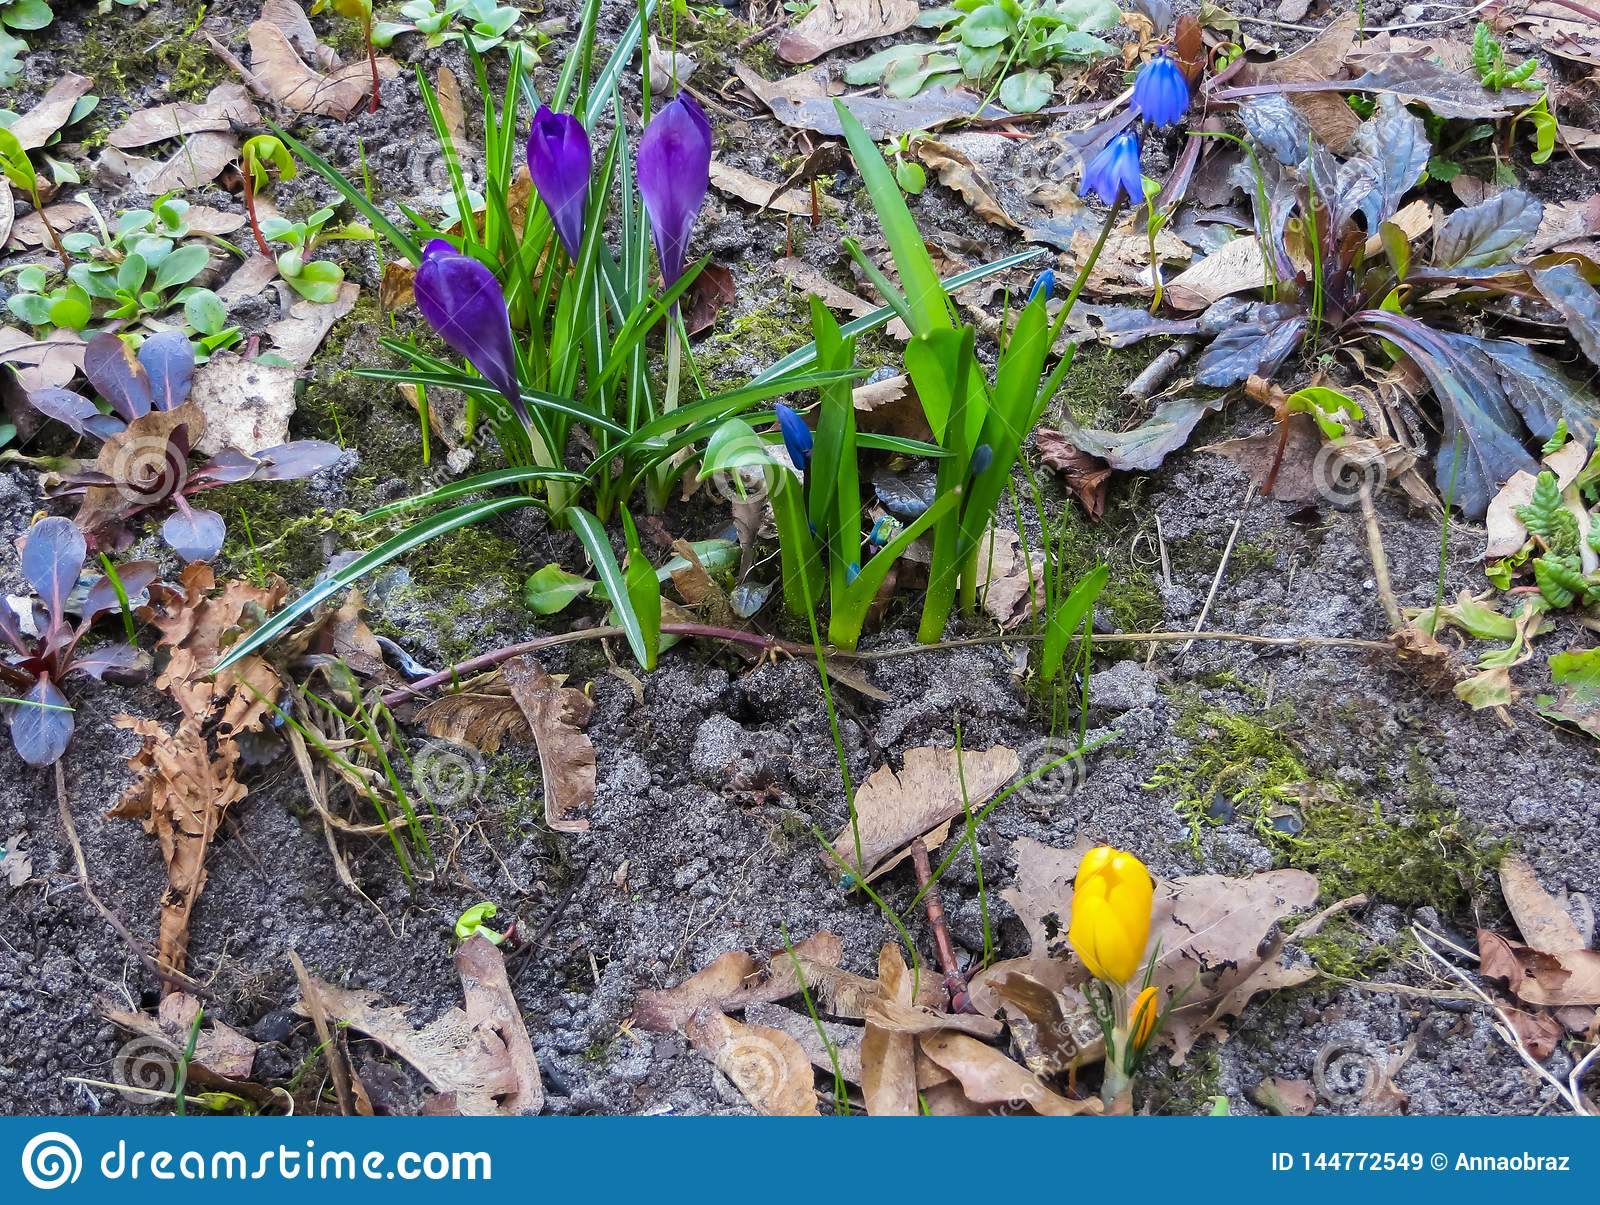 The first, delicate purple crocus flowers in early spring